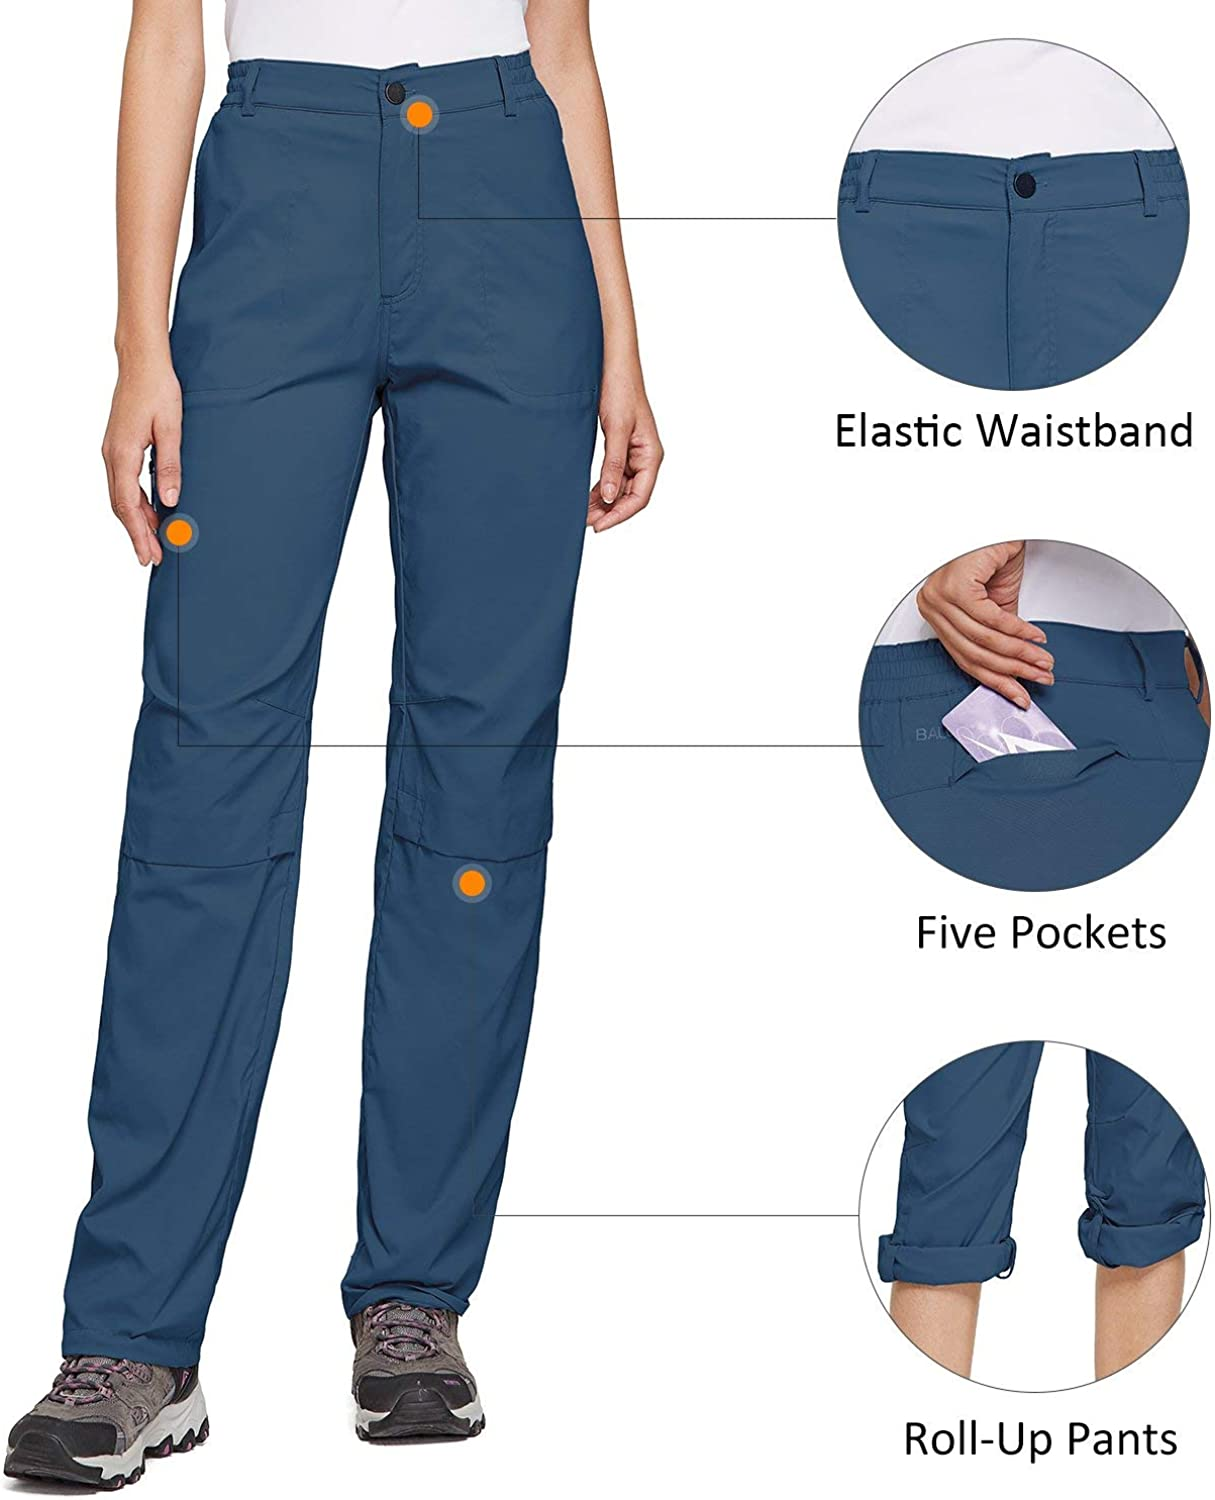 BALEAF Womens Lightweight Hiking Pants Convertible Roll Up UPF 50 Stretch Outdoor Capri Pants Water Resistant